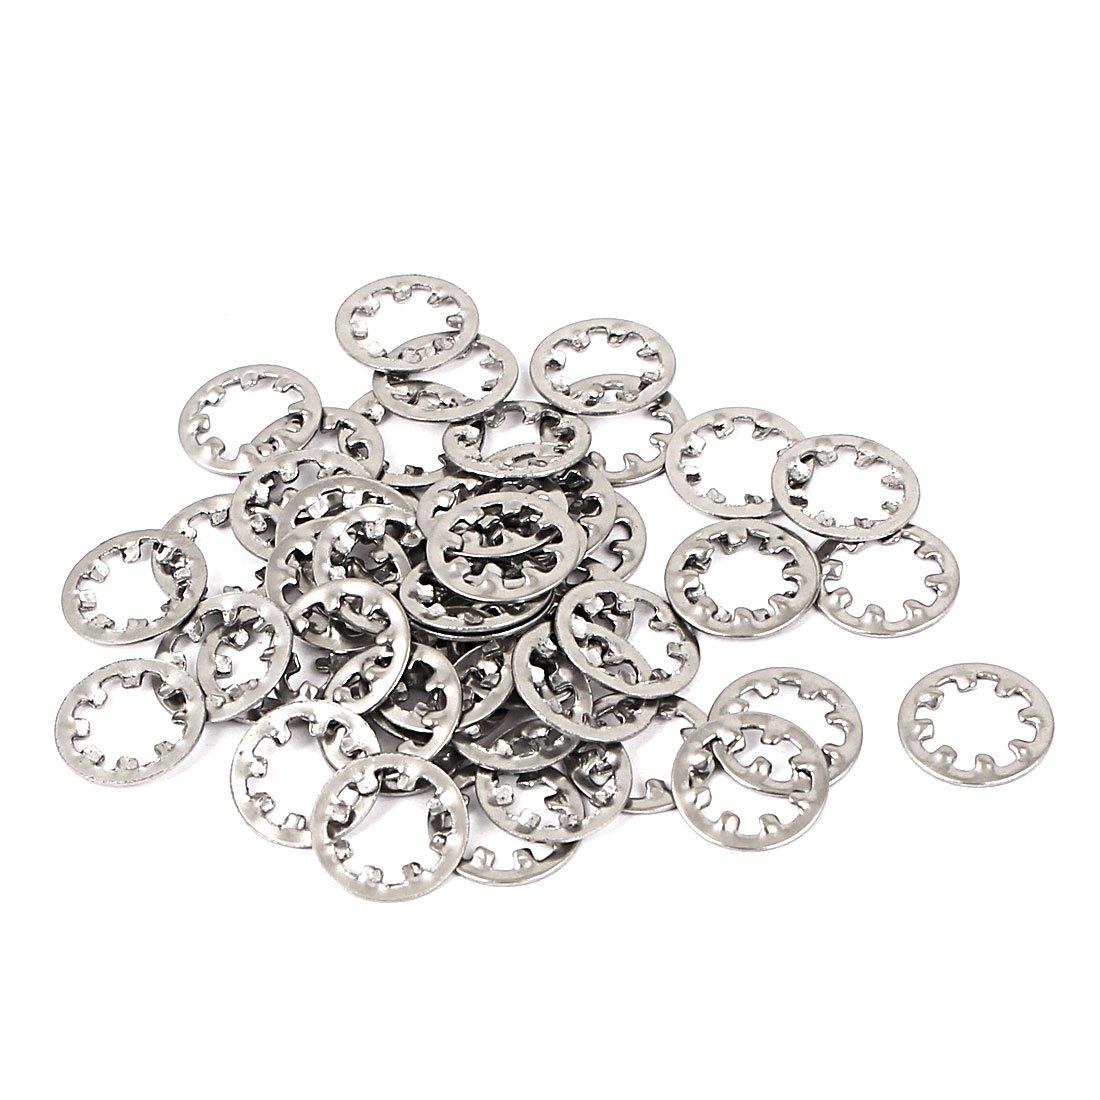 uxcell® M6 304 Stainless Steel Internal Star Lock Washers 50 Pcs a16012900ux0716